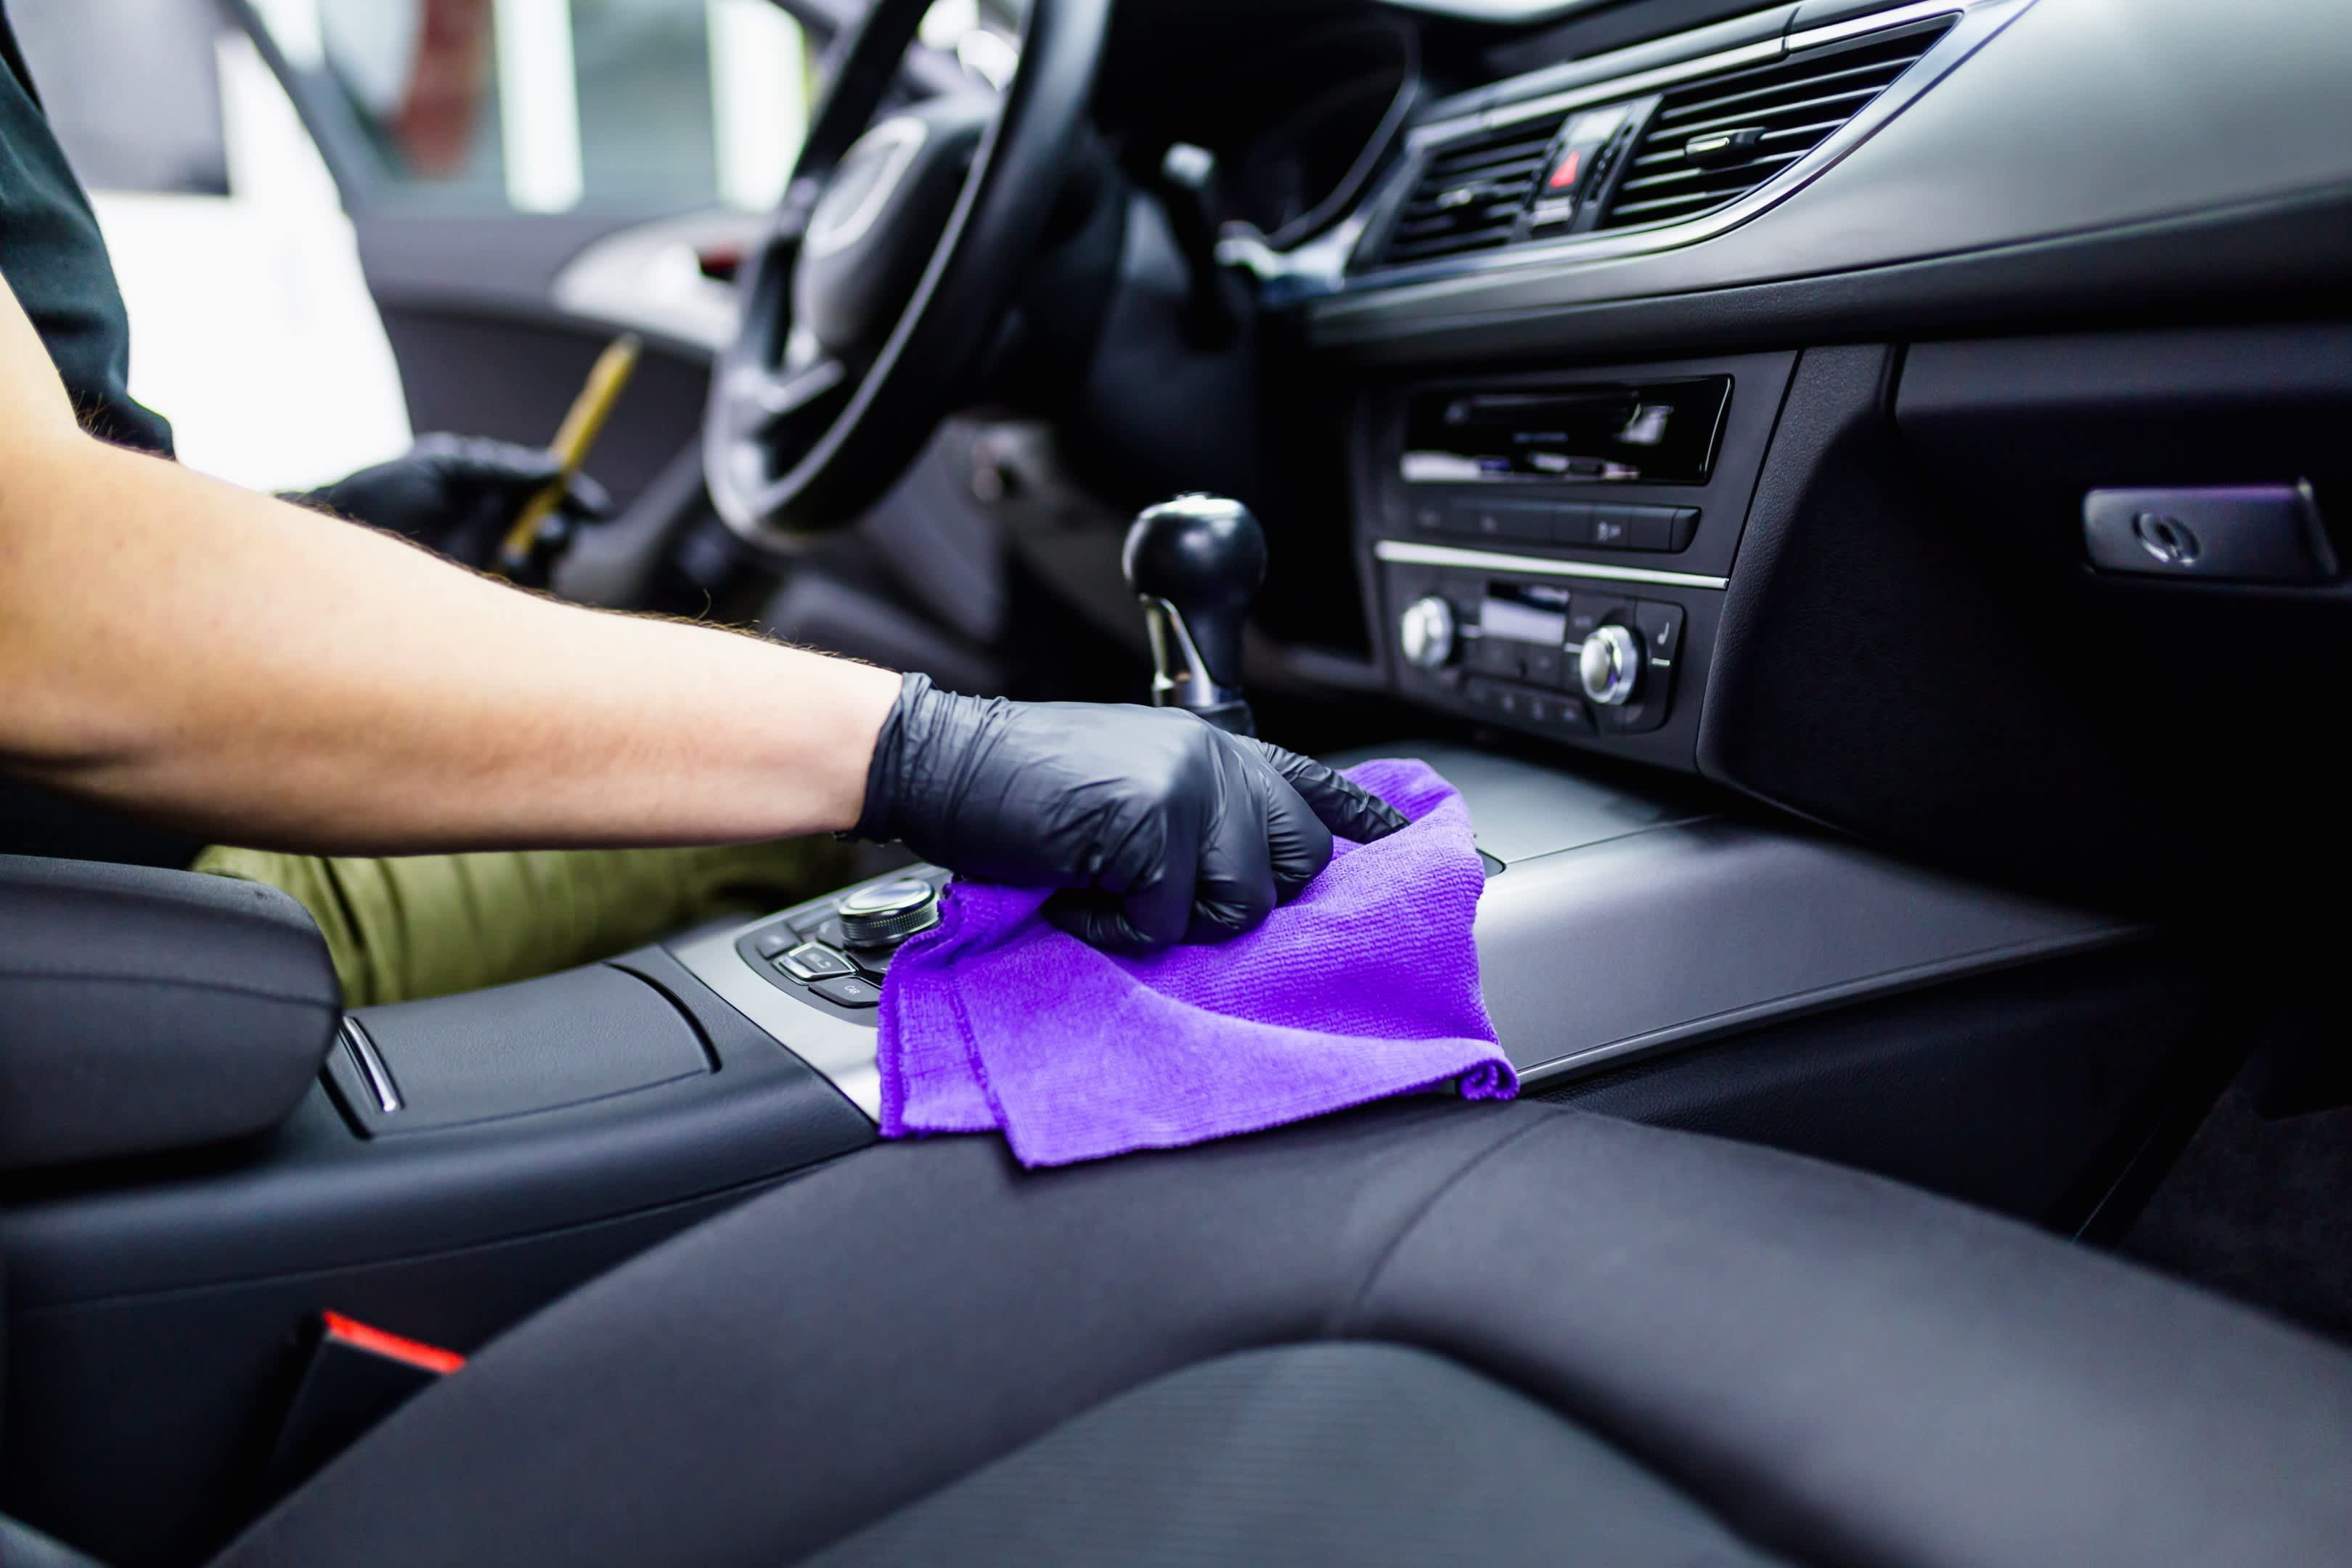 Our Silver Valet Car Wash Service Project Valets Cleaning Car Interior Car Detailing Car Detailing Interior